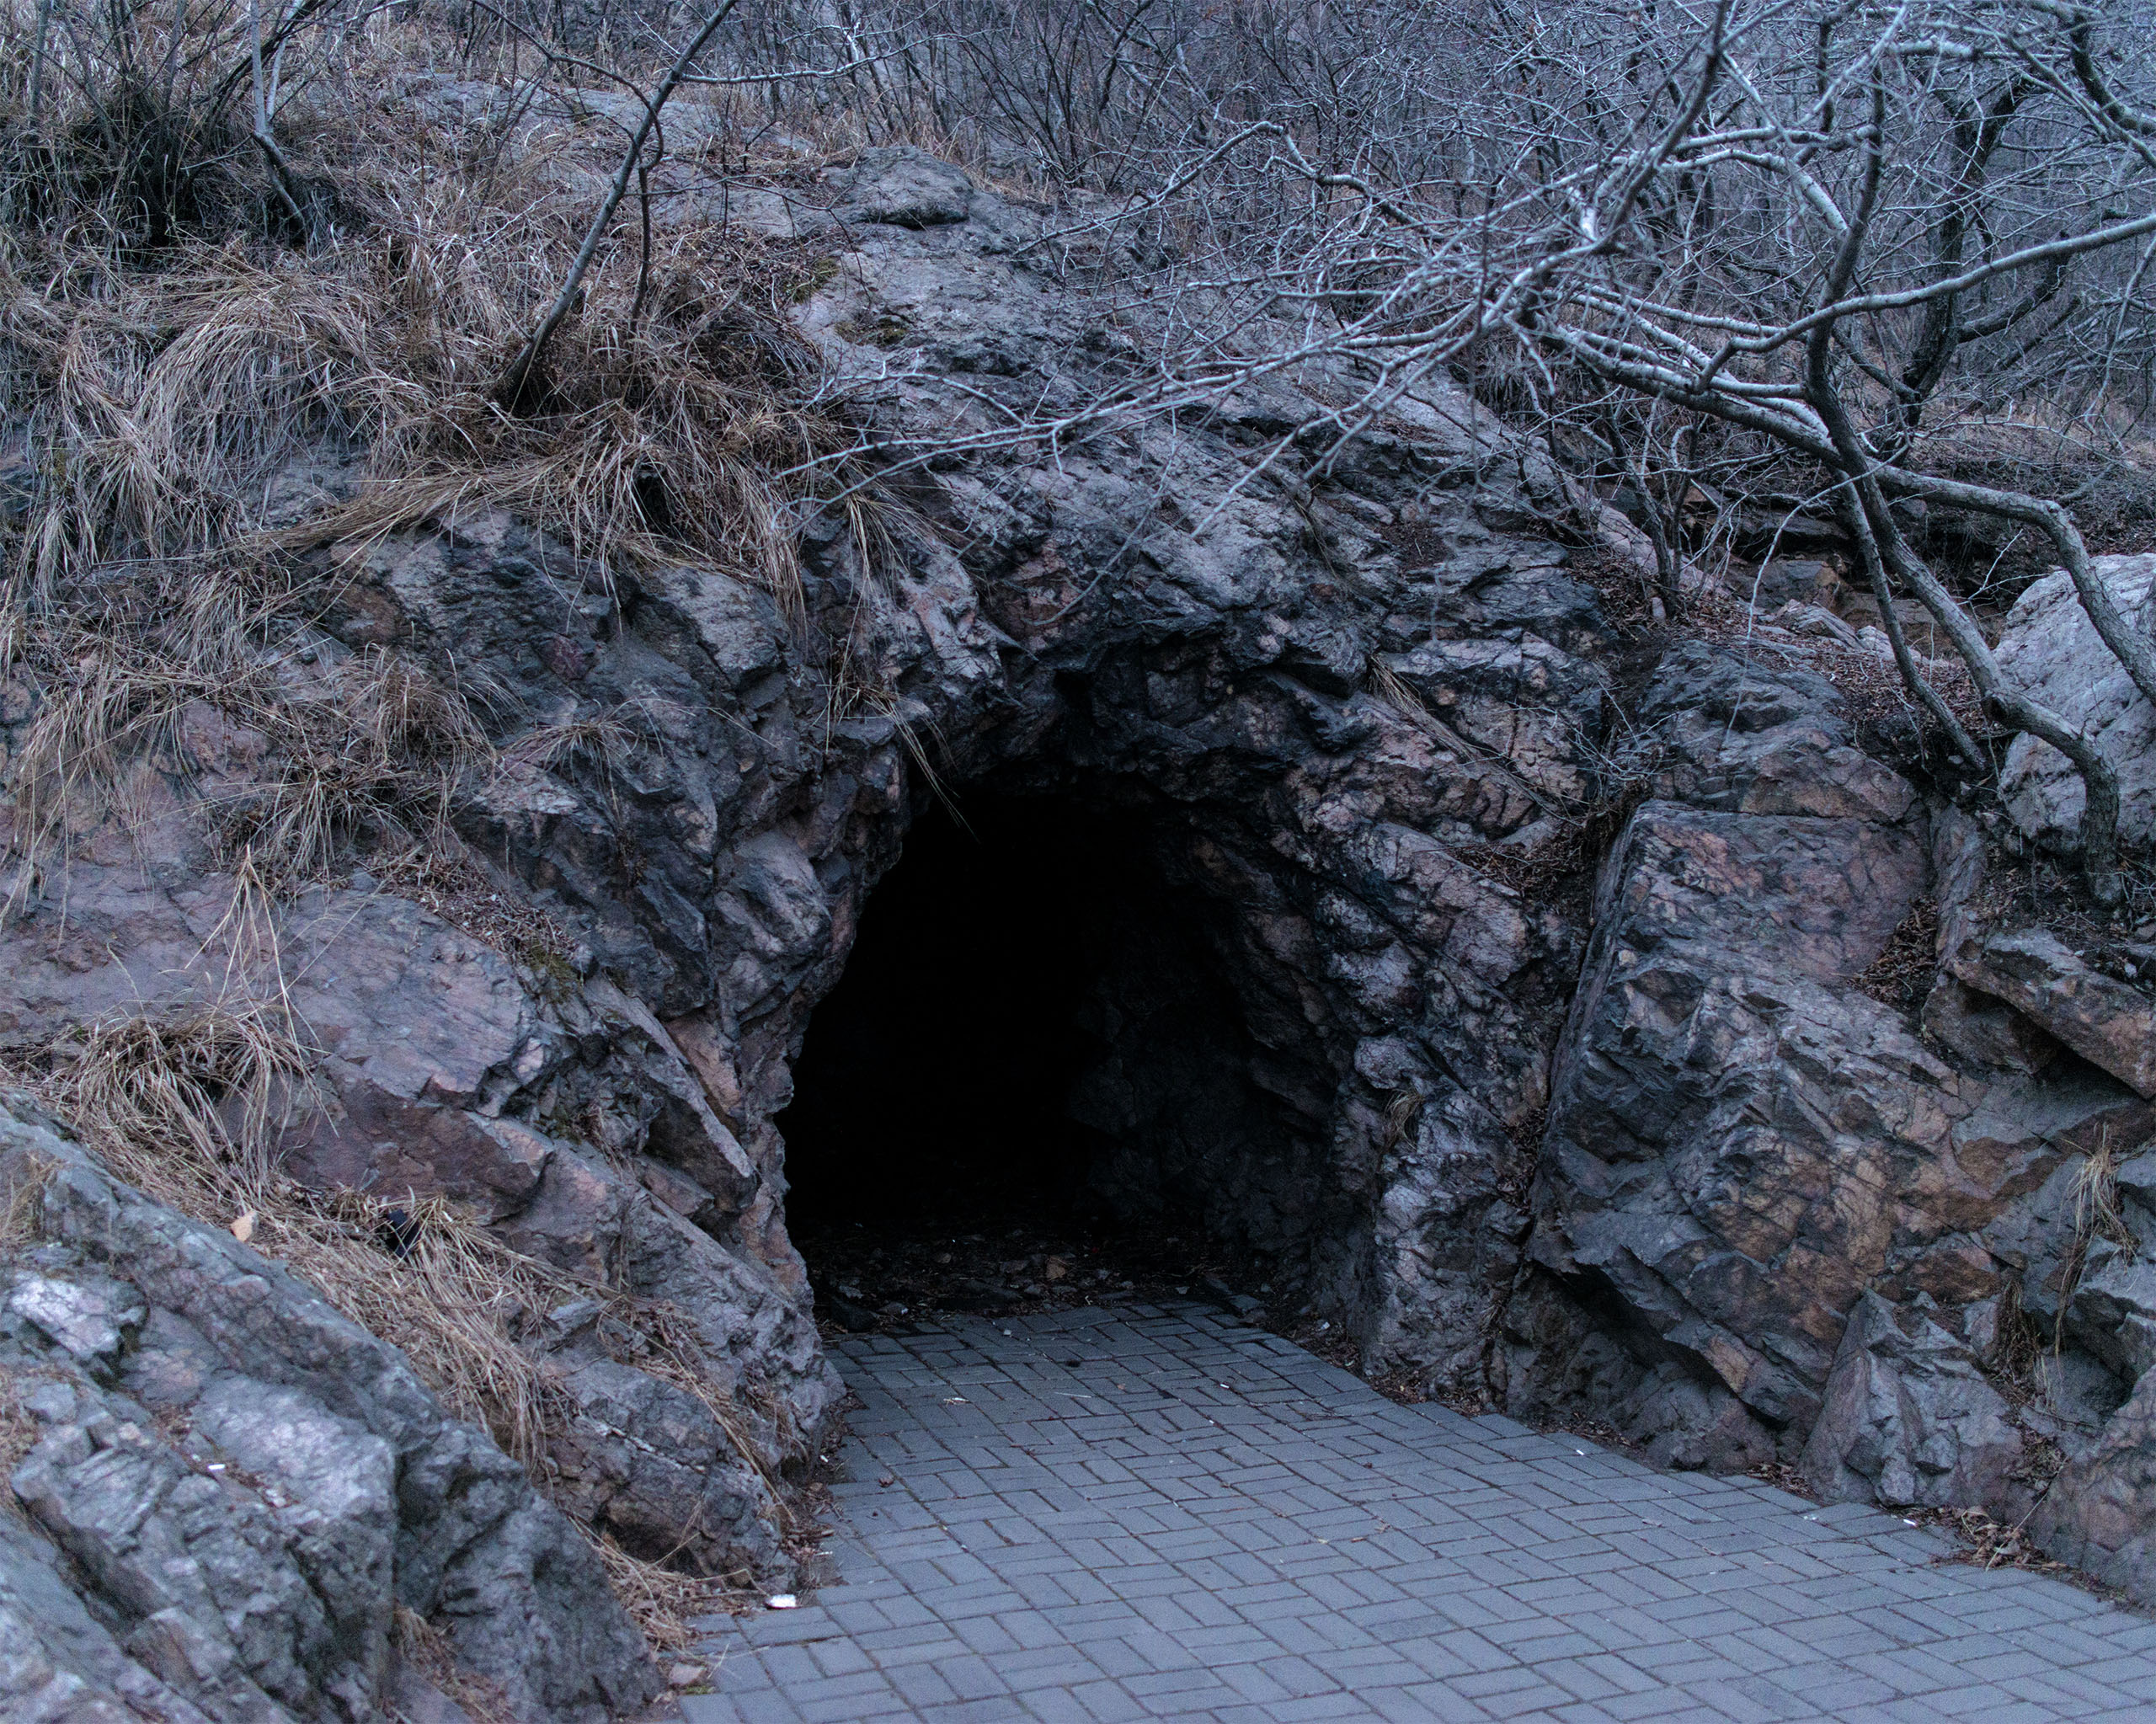 A cave near the Yalu River in the expanding city of Dandong. Caves are used by defectors fleeing from North Korea to hide.